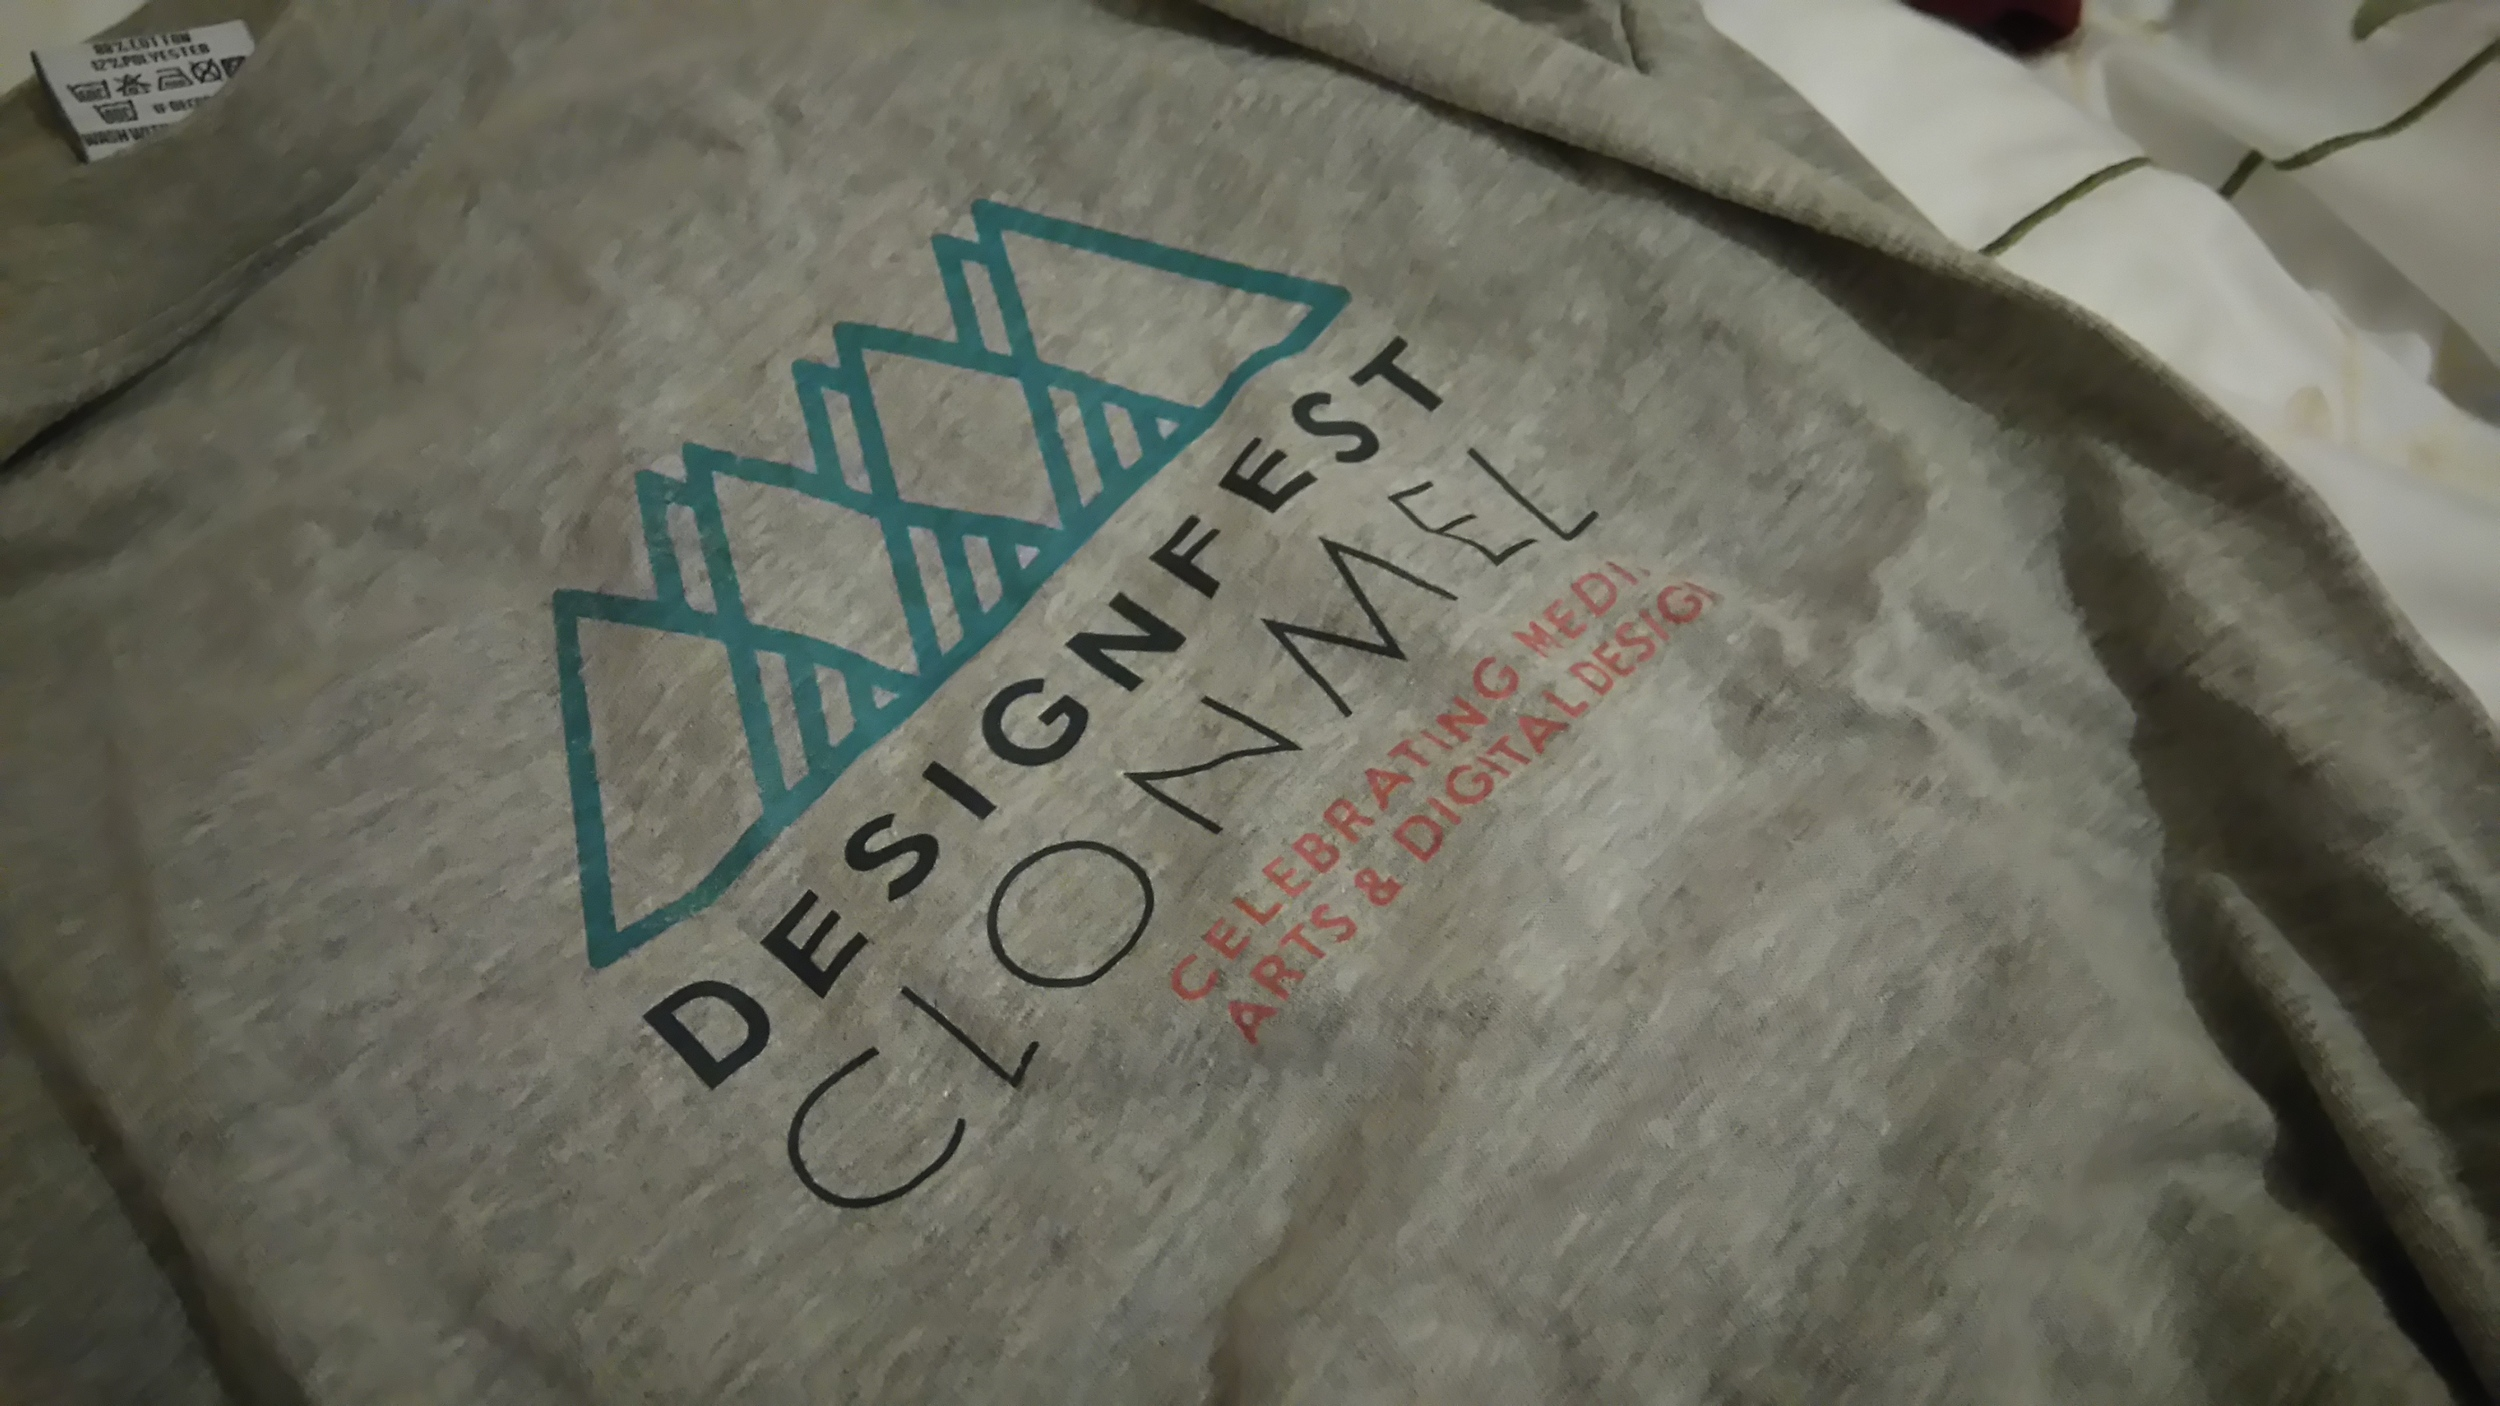 I didn't take any decent photos at DesignFest...I did help out though, so here's a t-shirt... It'll have to do. :)